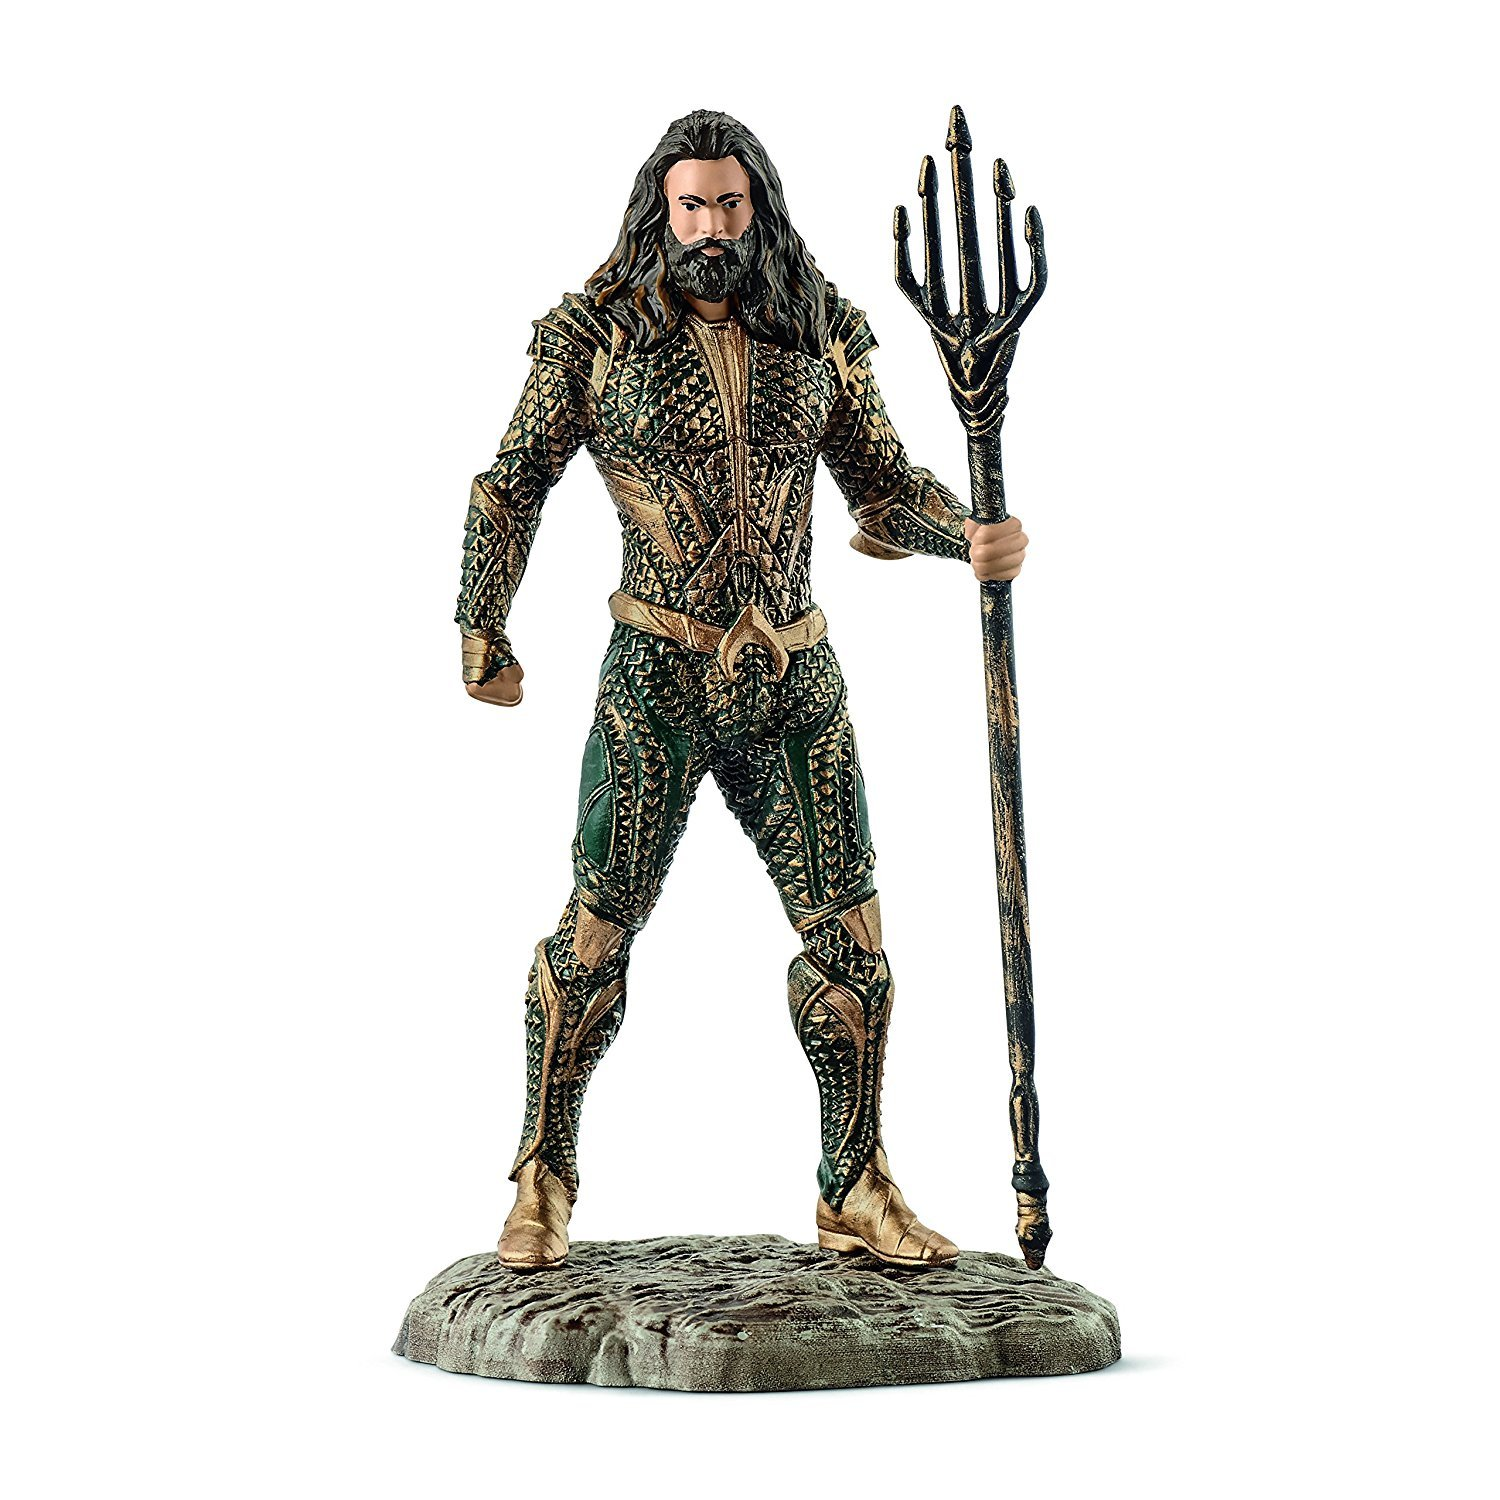 Schleich Justice League Aquaman Toy Figurine